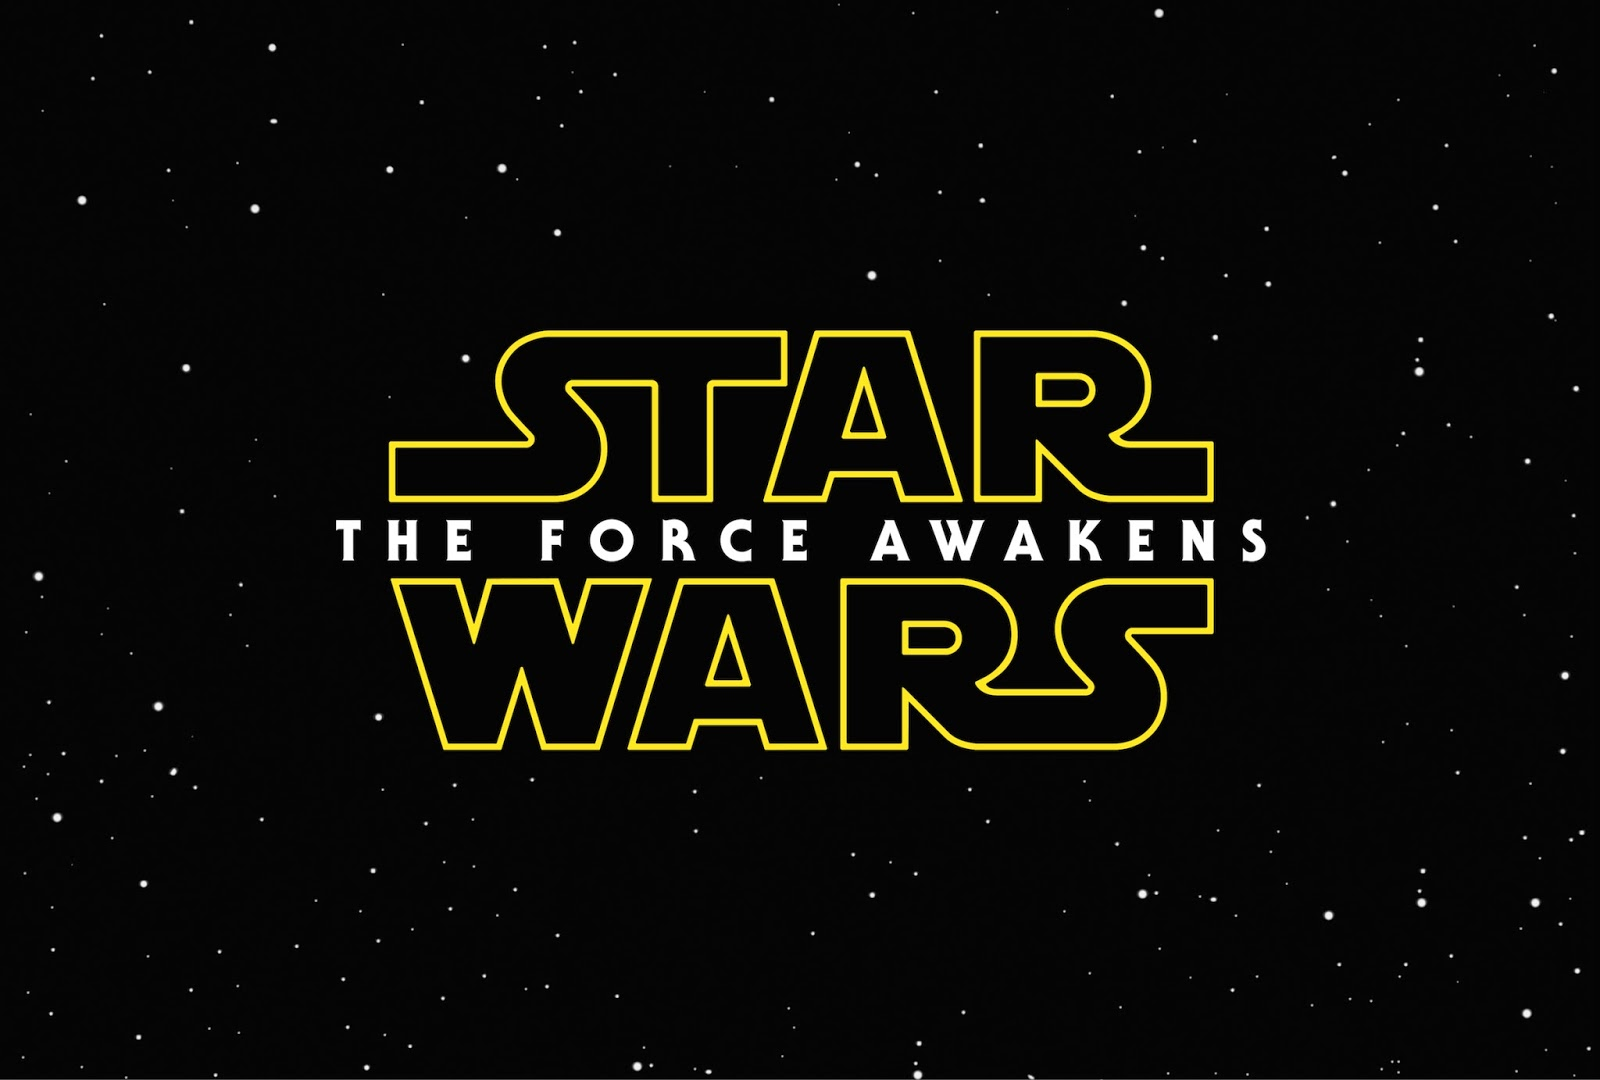 New Star Wars: The Force Awakens Teaser Trailer is Here Plus Images